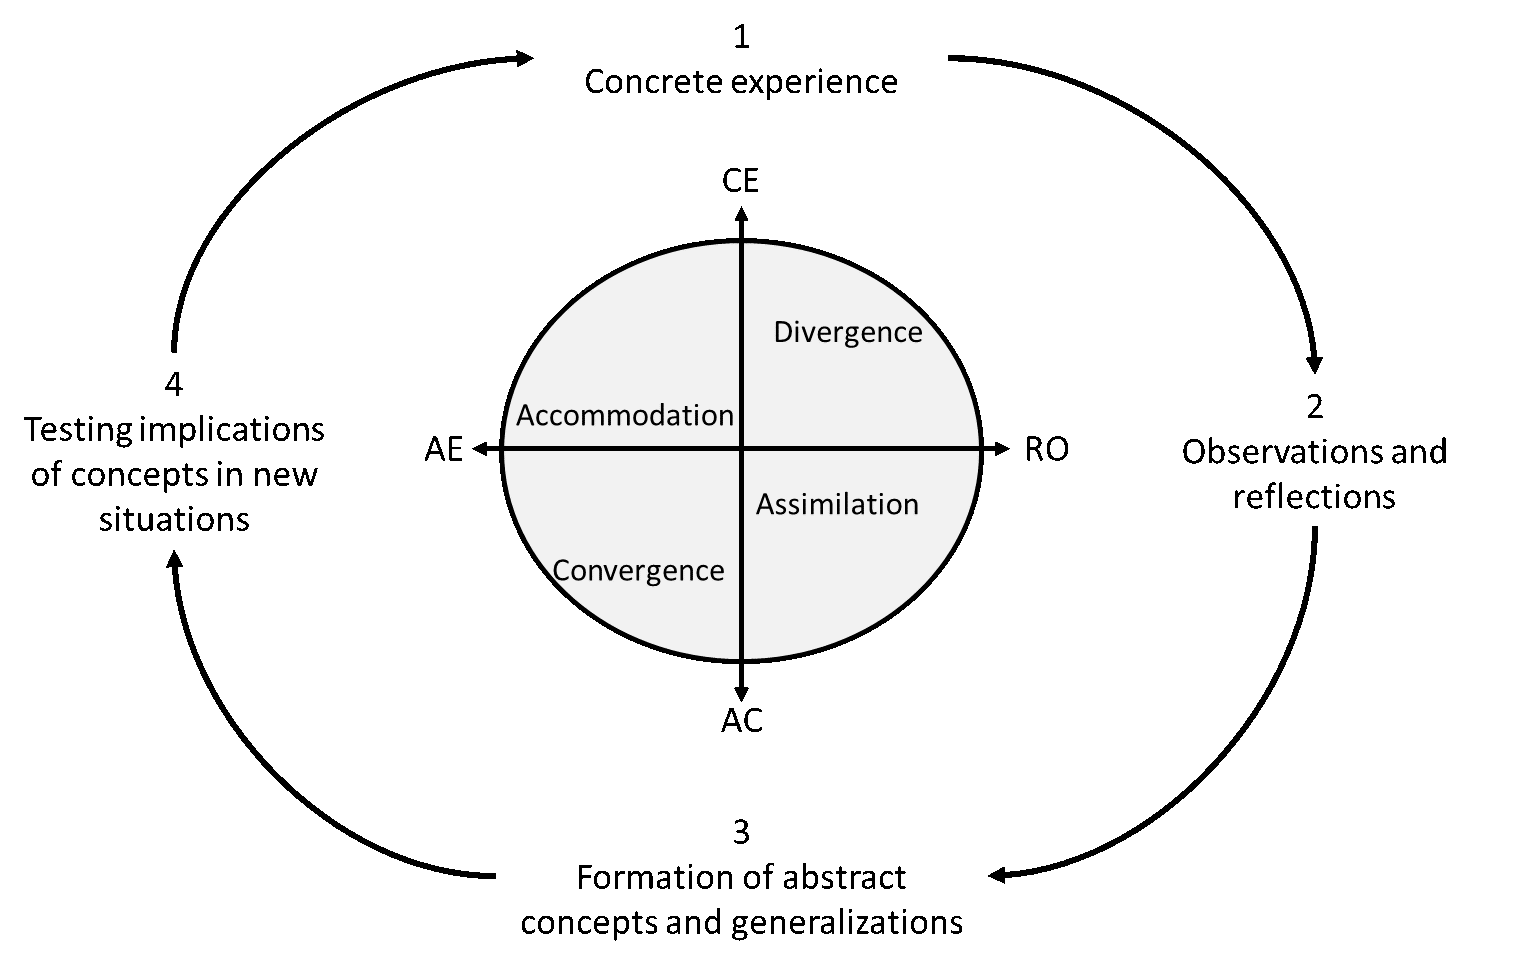 Figure 3:  Experiential Learning Model (modified from Figure 1 in Kolb 1981). Learners start from experiences (1) leading to reflections (2) then to generalization (3). Finally, learners test those concepts in new situations (4) creating new experiences, thus, continuing the cycle. The required abilities to navigate the cycles lie along two axes (see text for details): Concrete Experience (CE) ↔ Abstract Conceptualization (AC), and Active Experimentation (AE) ↔ Reflective Observation (RO). Four learning styles account for the areas delimited by the ability axes: Accommodation, Divergence, Assimilation, and Convergence (see text for details).